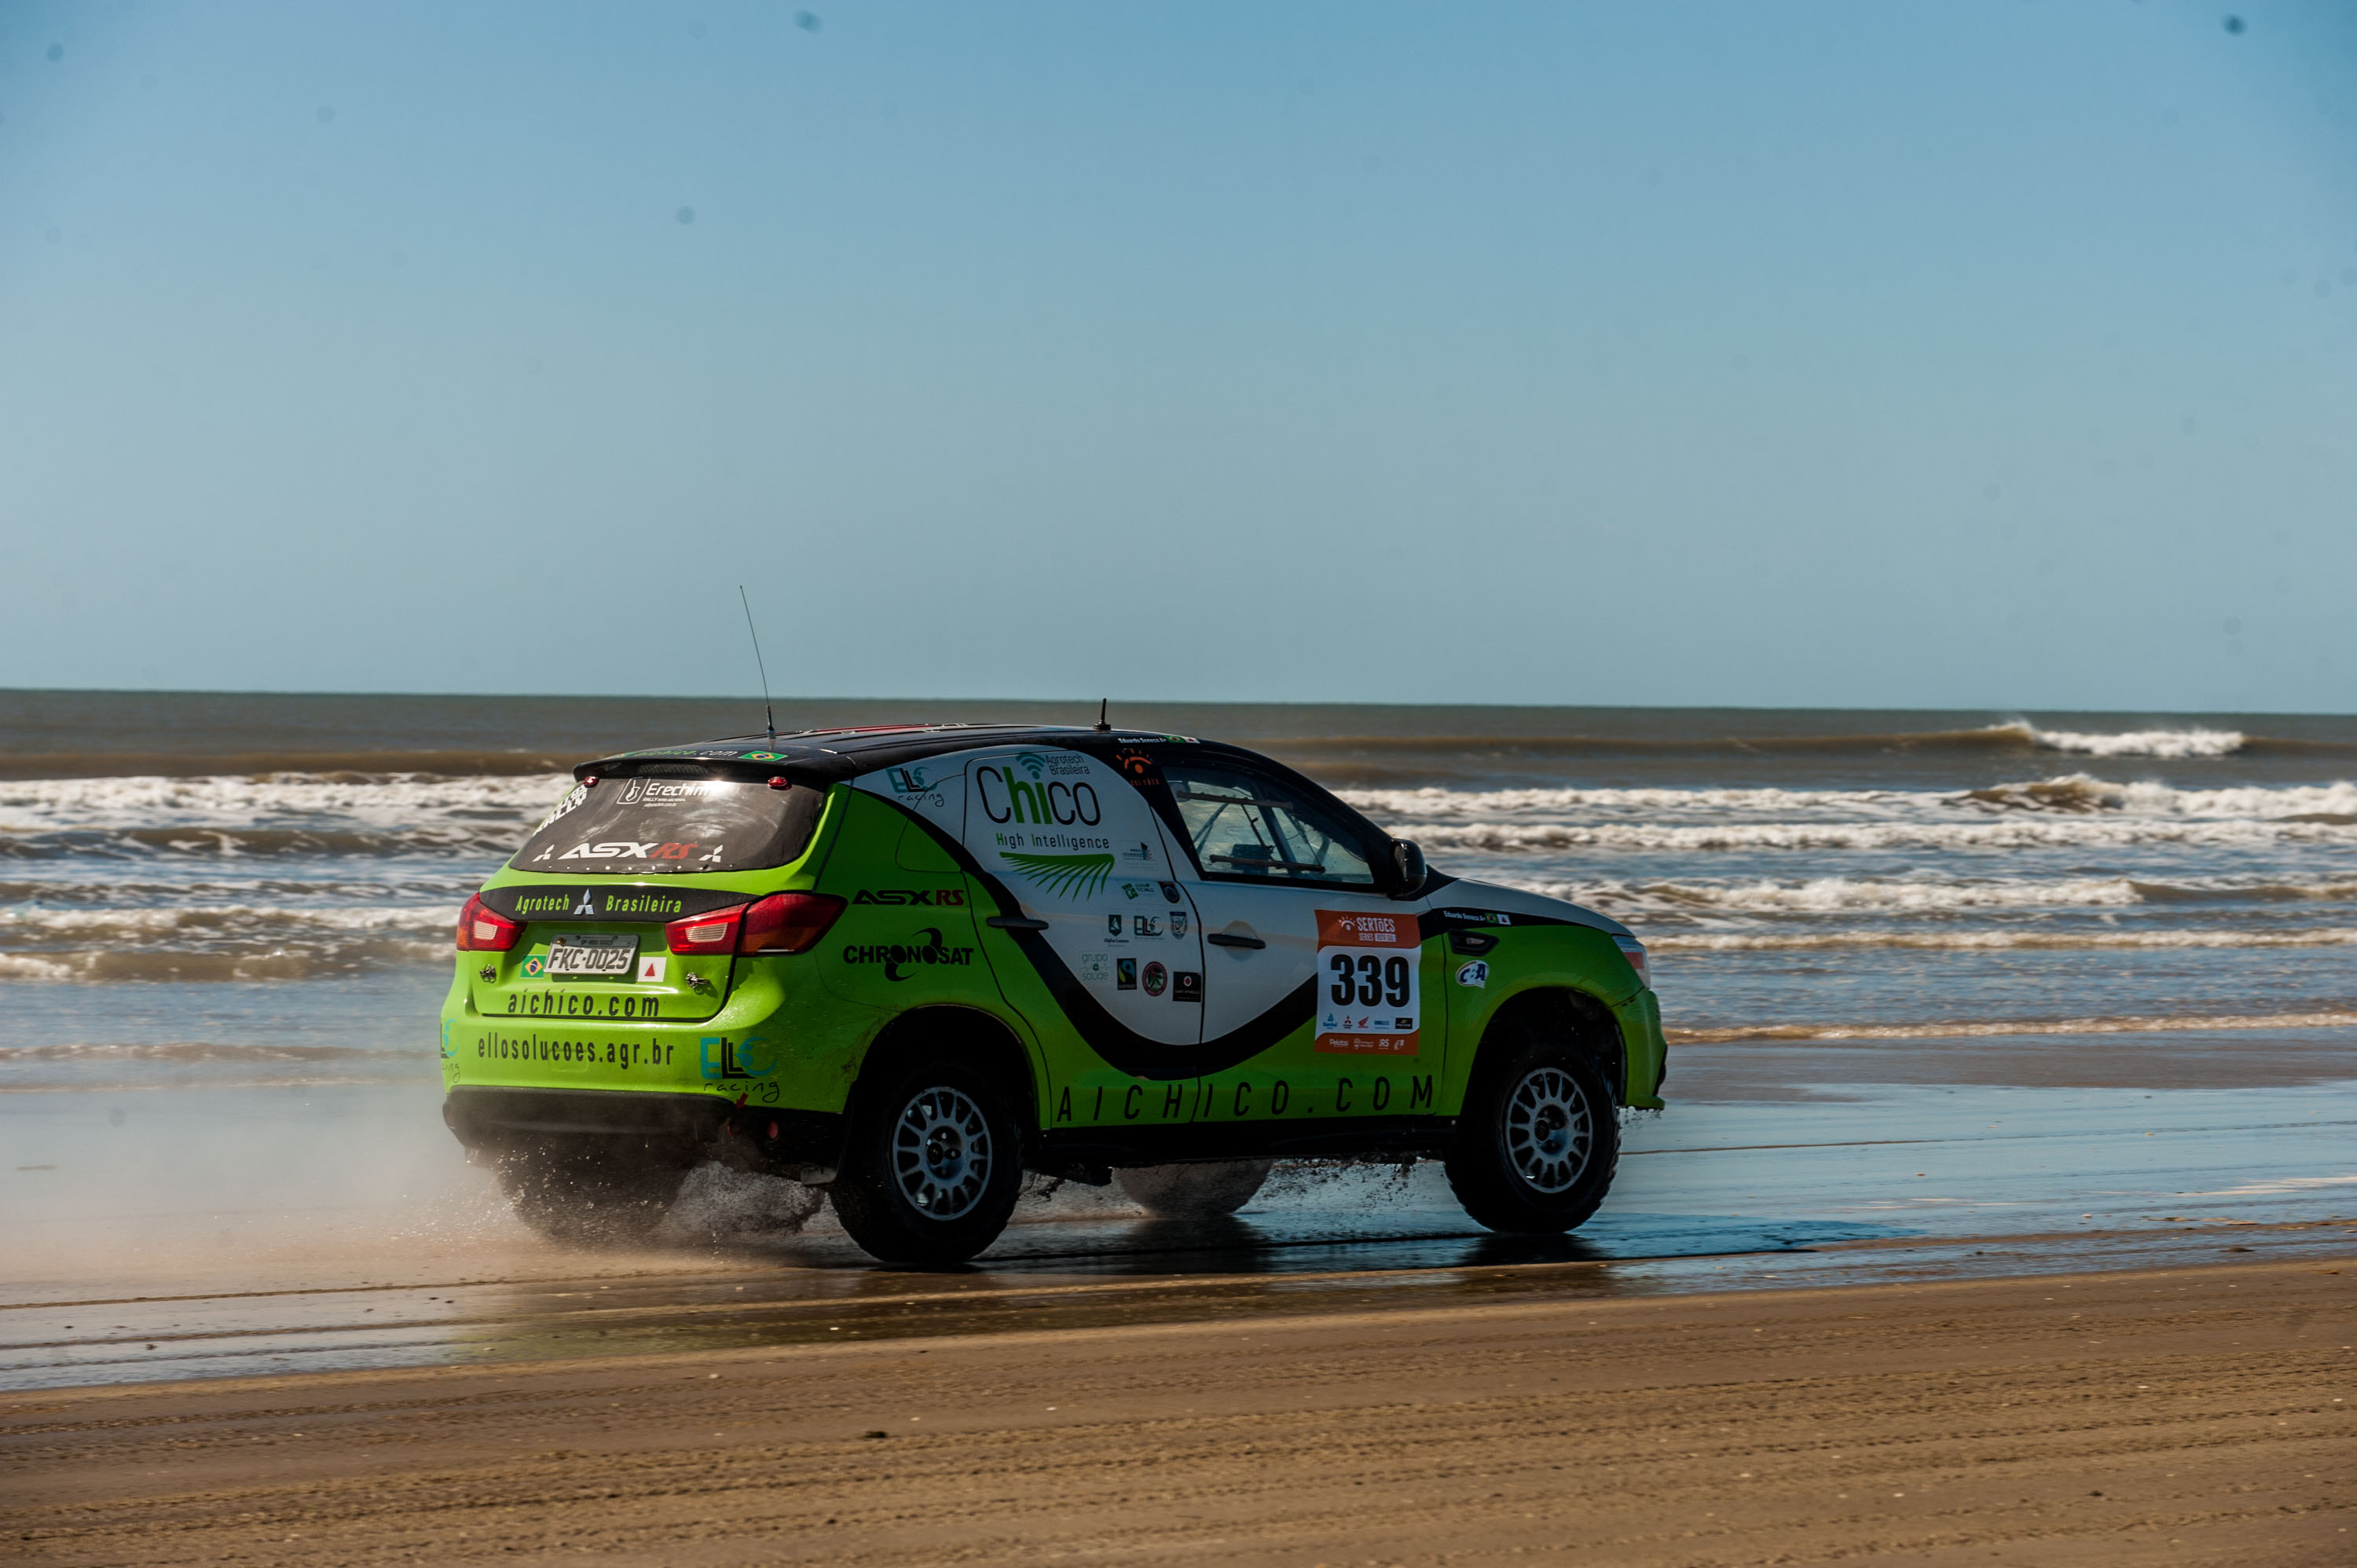 Photo of Rally – Ello MotorSports conquistou o quarto lugar no Sertões Series Rota Sul